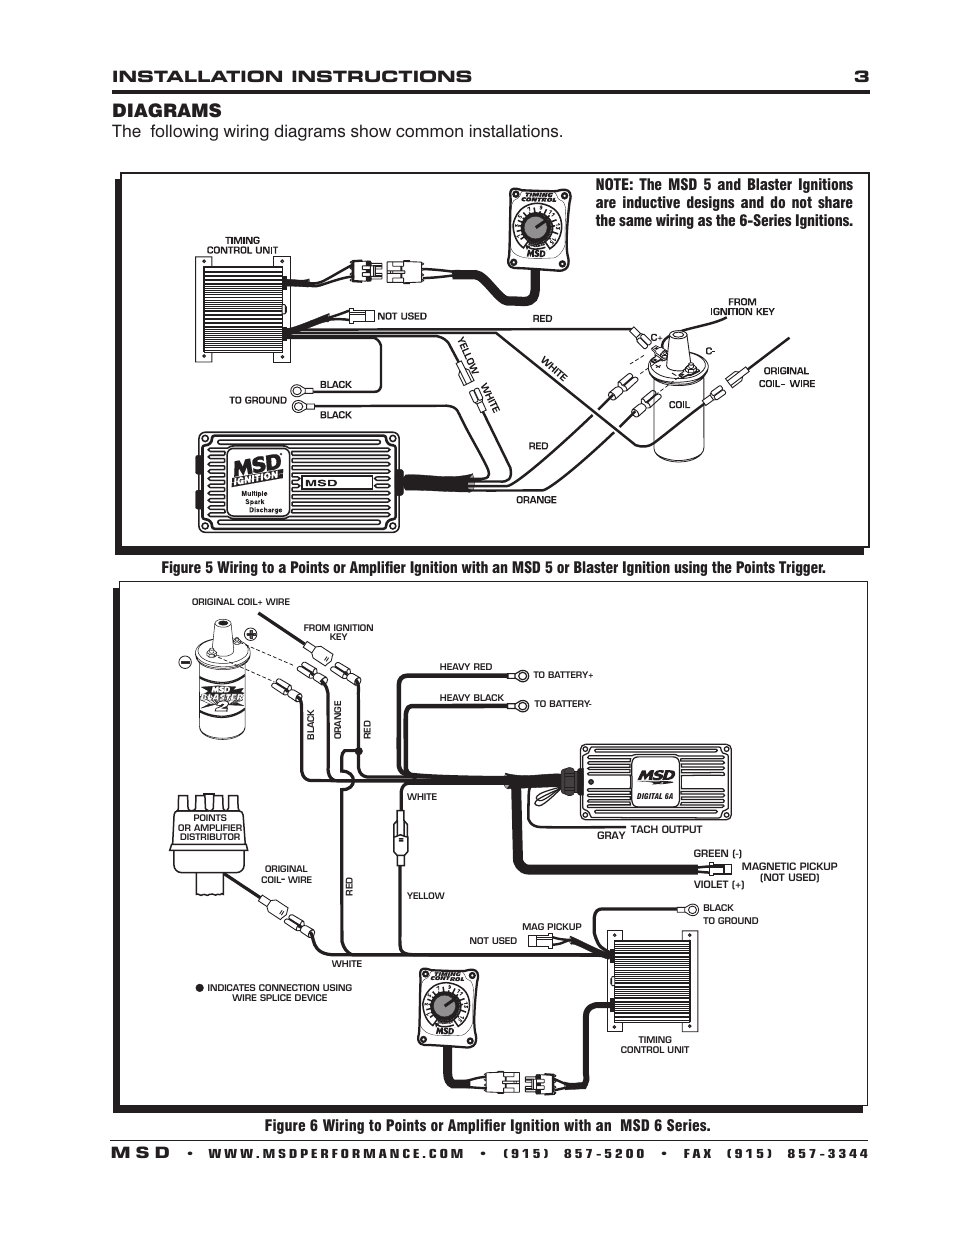 medium resolution of diagrams installation instructions 3 m s d msd 8680 adjustable